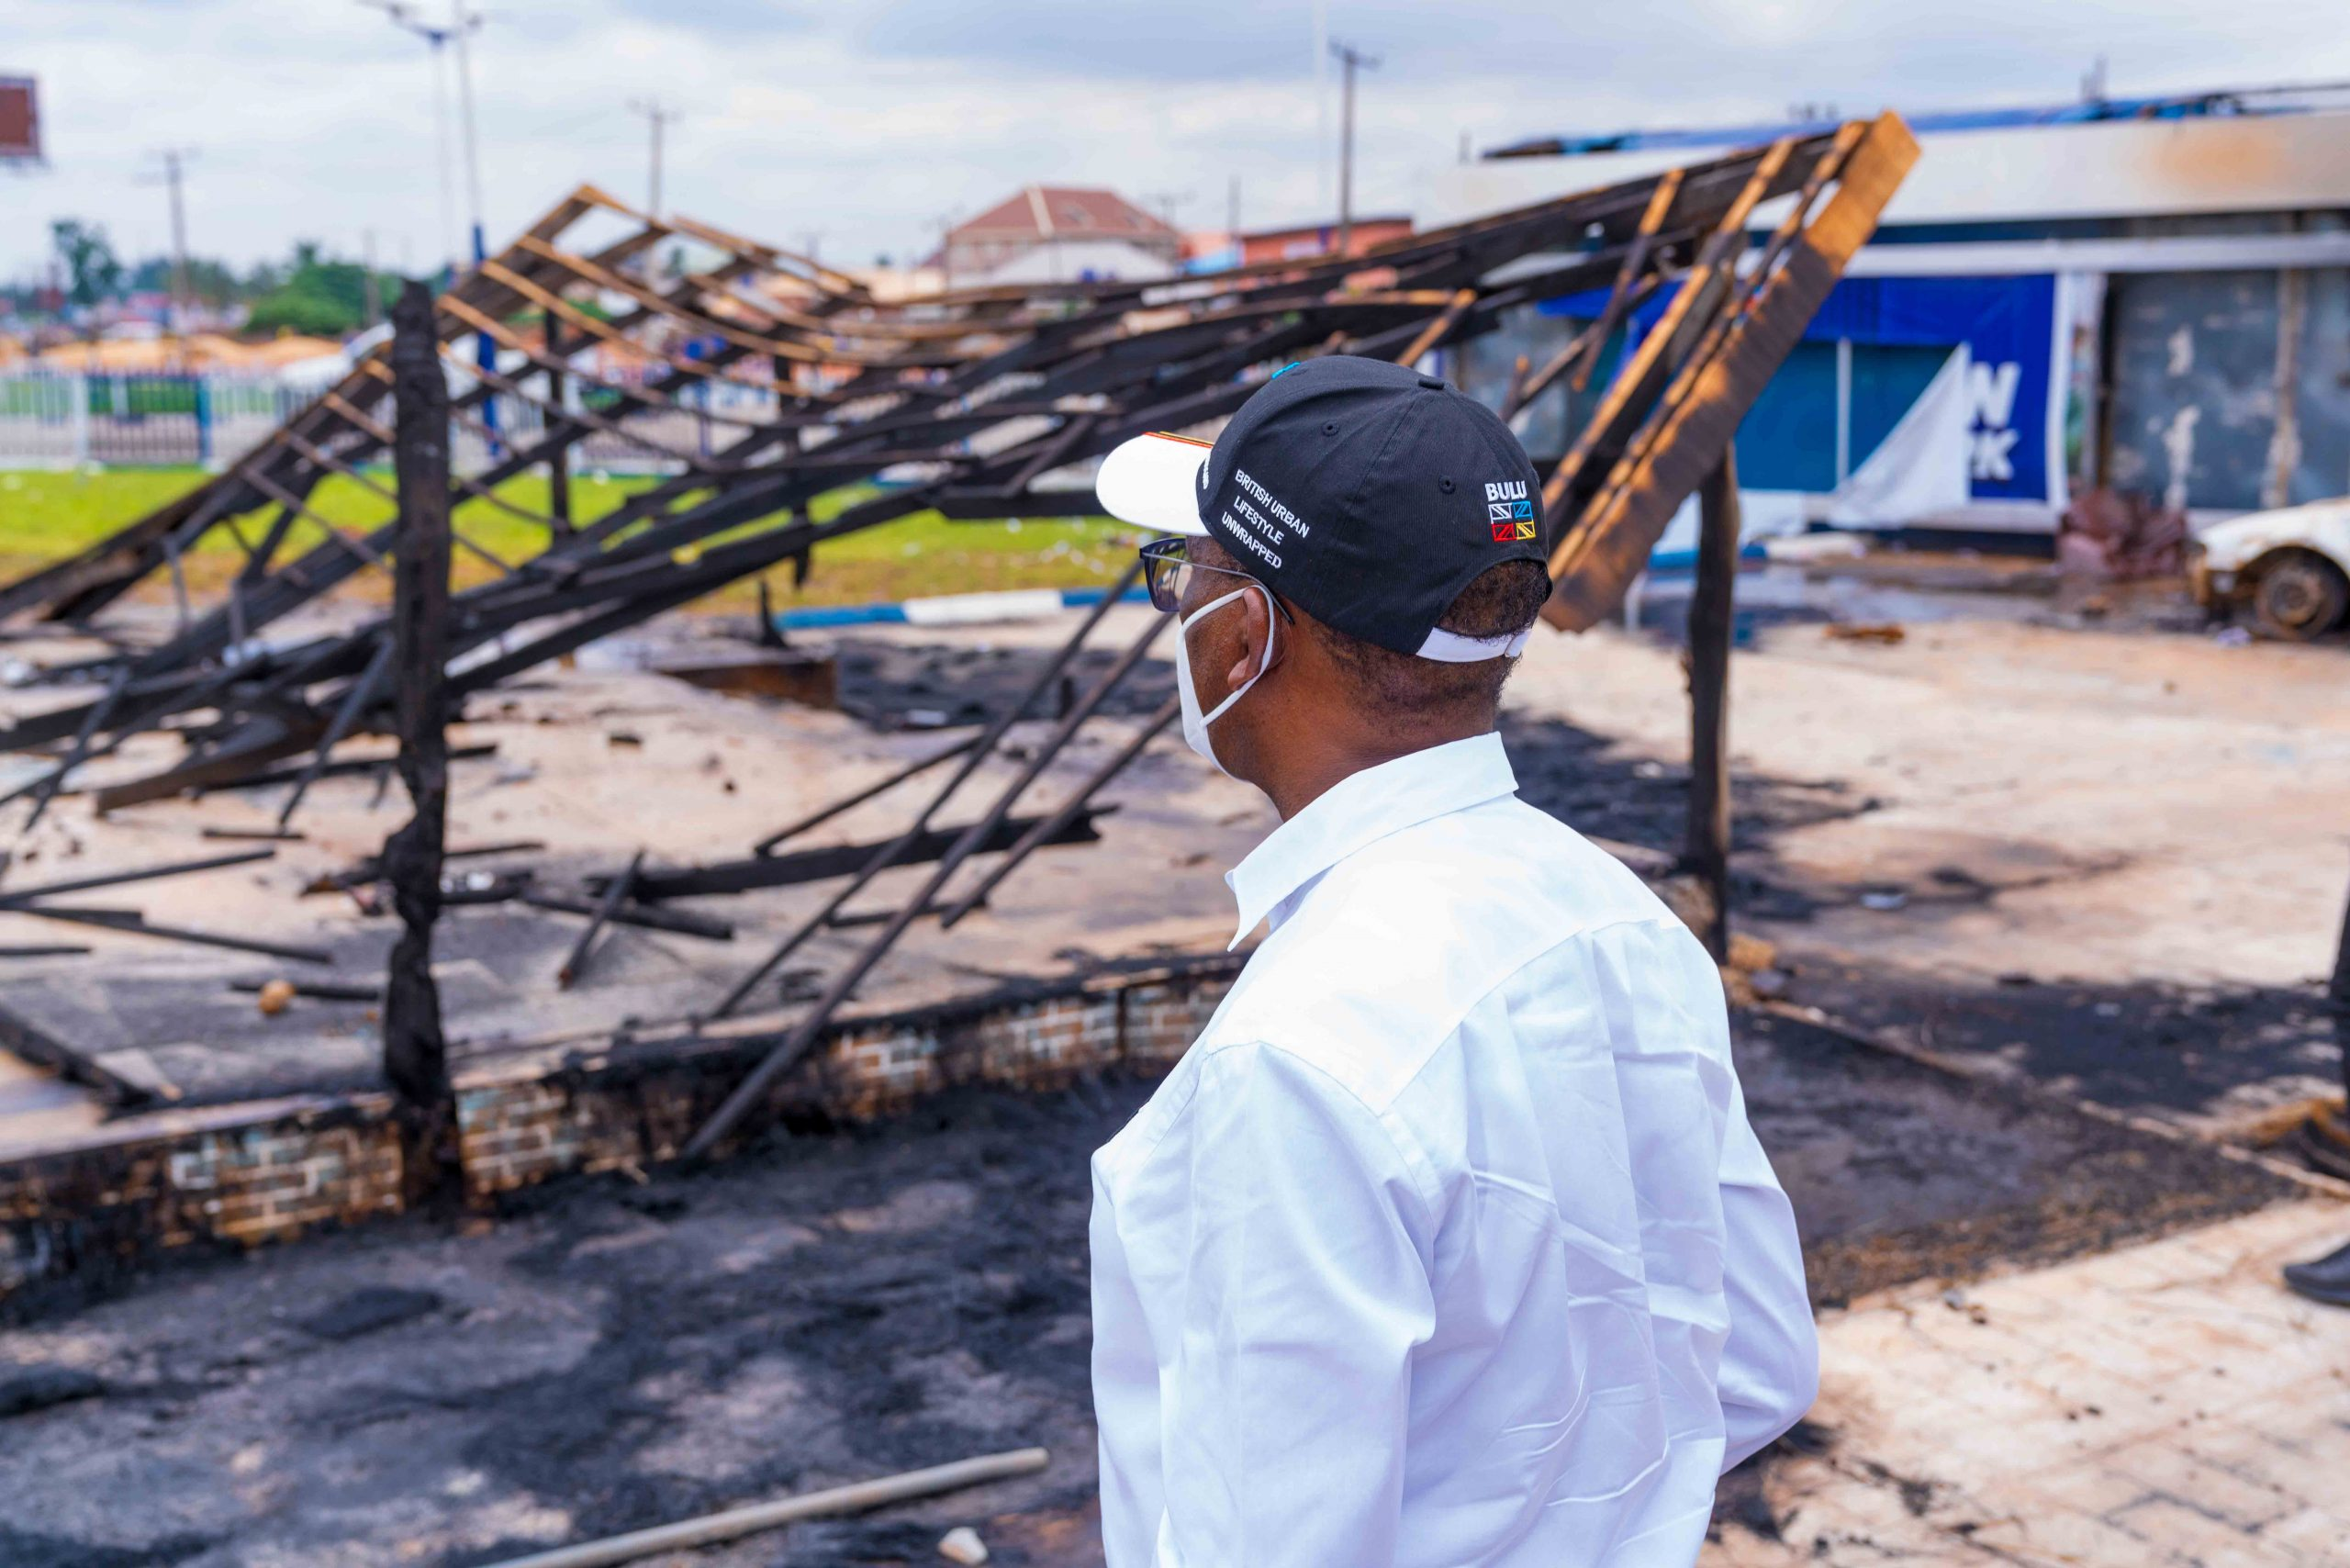 Governor Okowa during the inspection of the  burnt  public buildings and some property around the State capital.